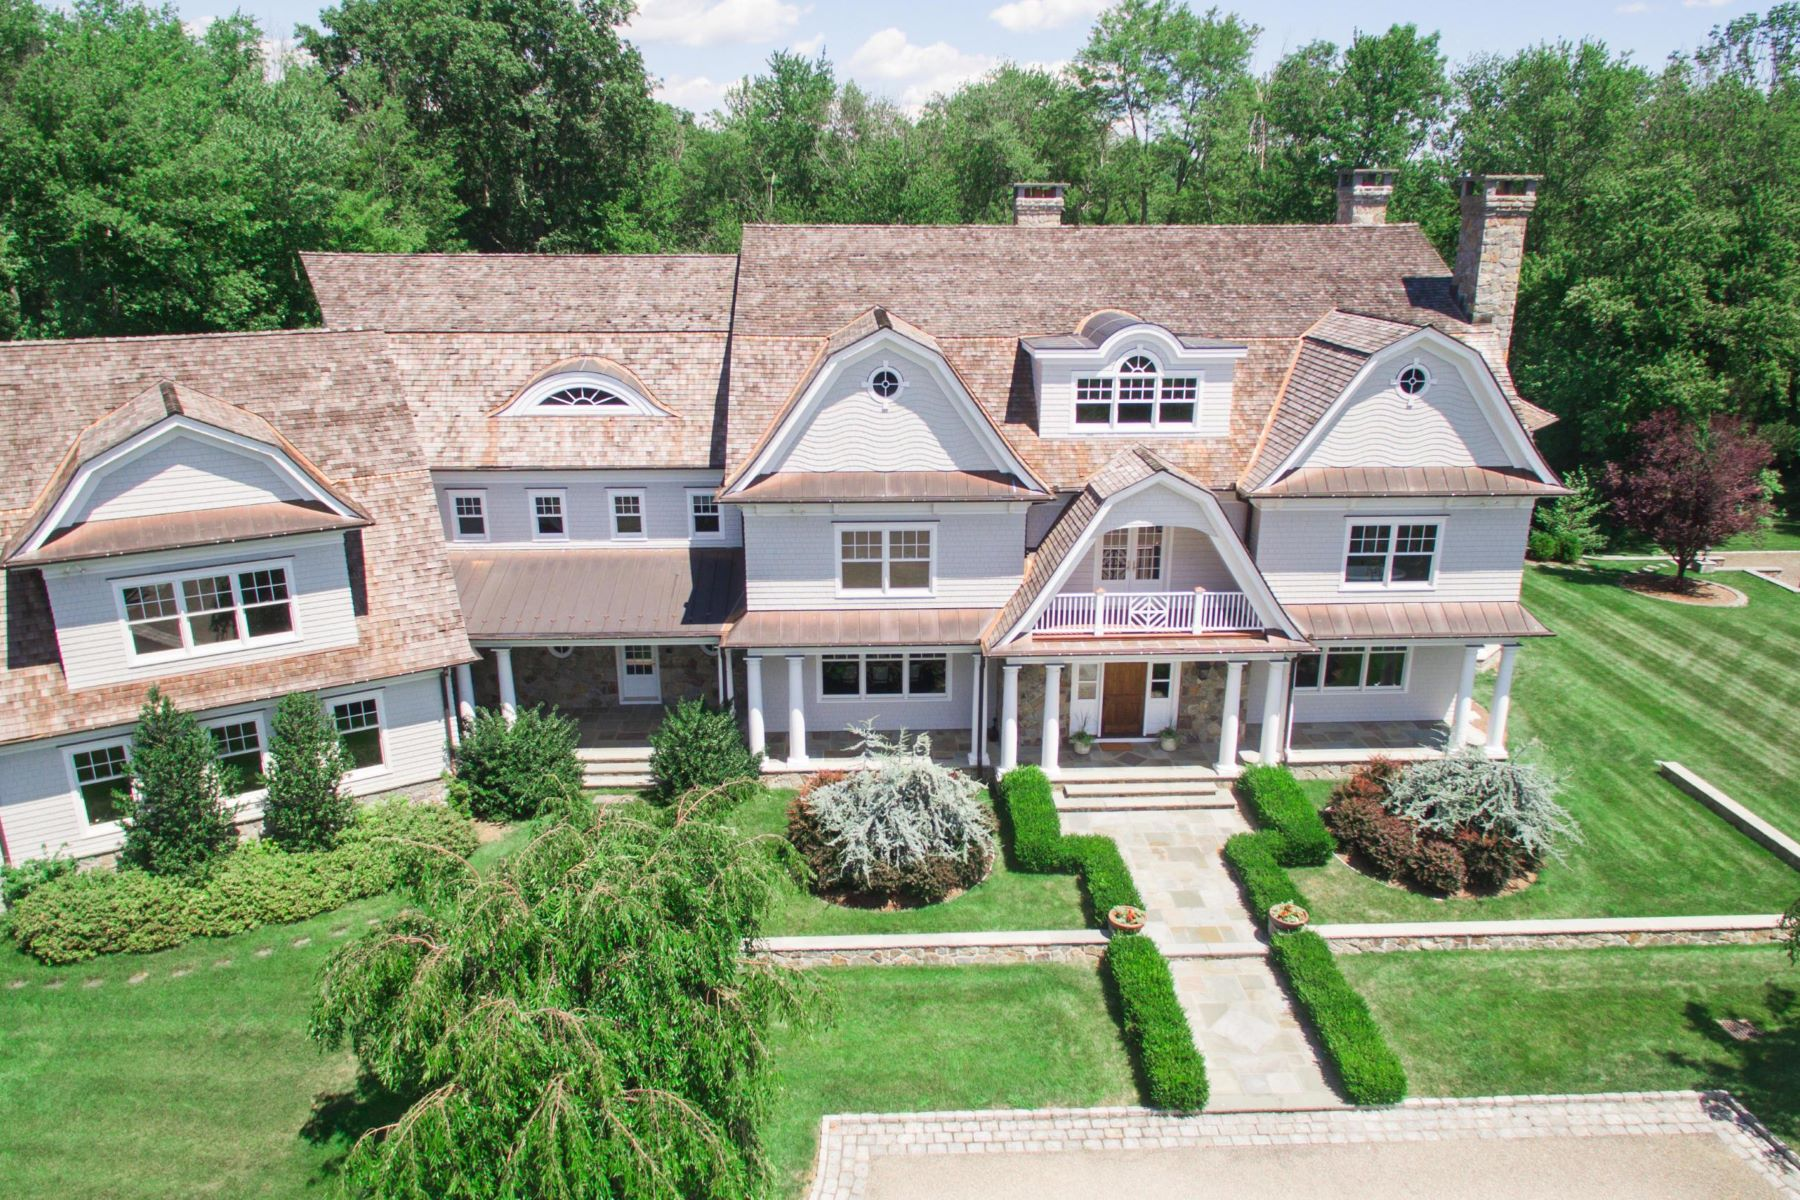 Casa Unifamiliar por un Venta en 1385 Smith Ridge Road 1385 Smith Ridge Road New Canaan, Connecticut 06840 Estados Unidos